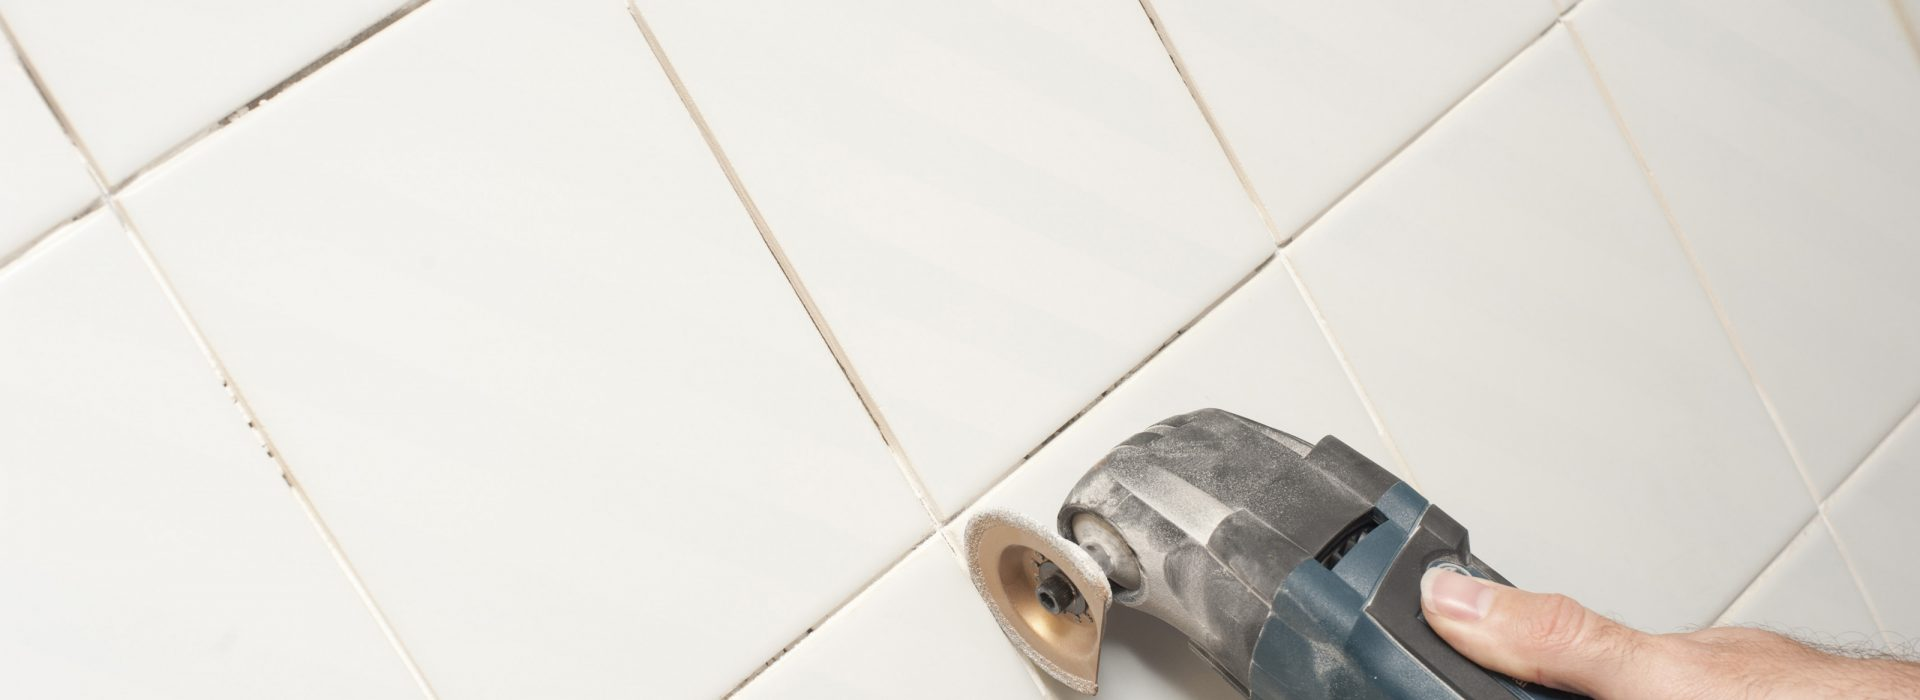 7 Types of Tile Cutting